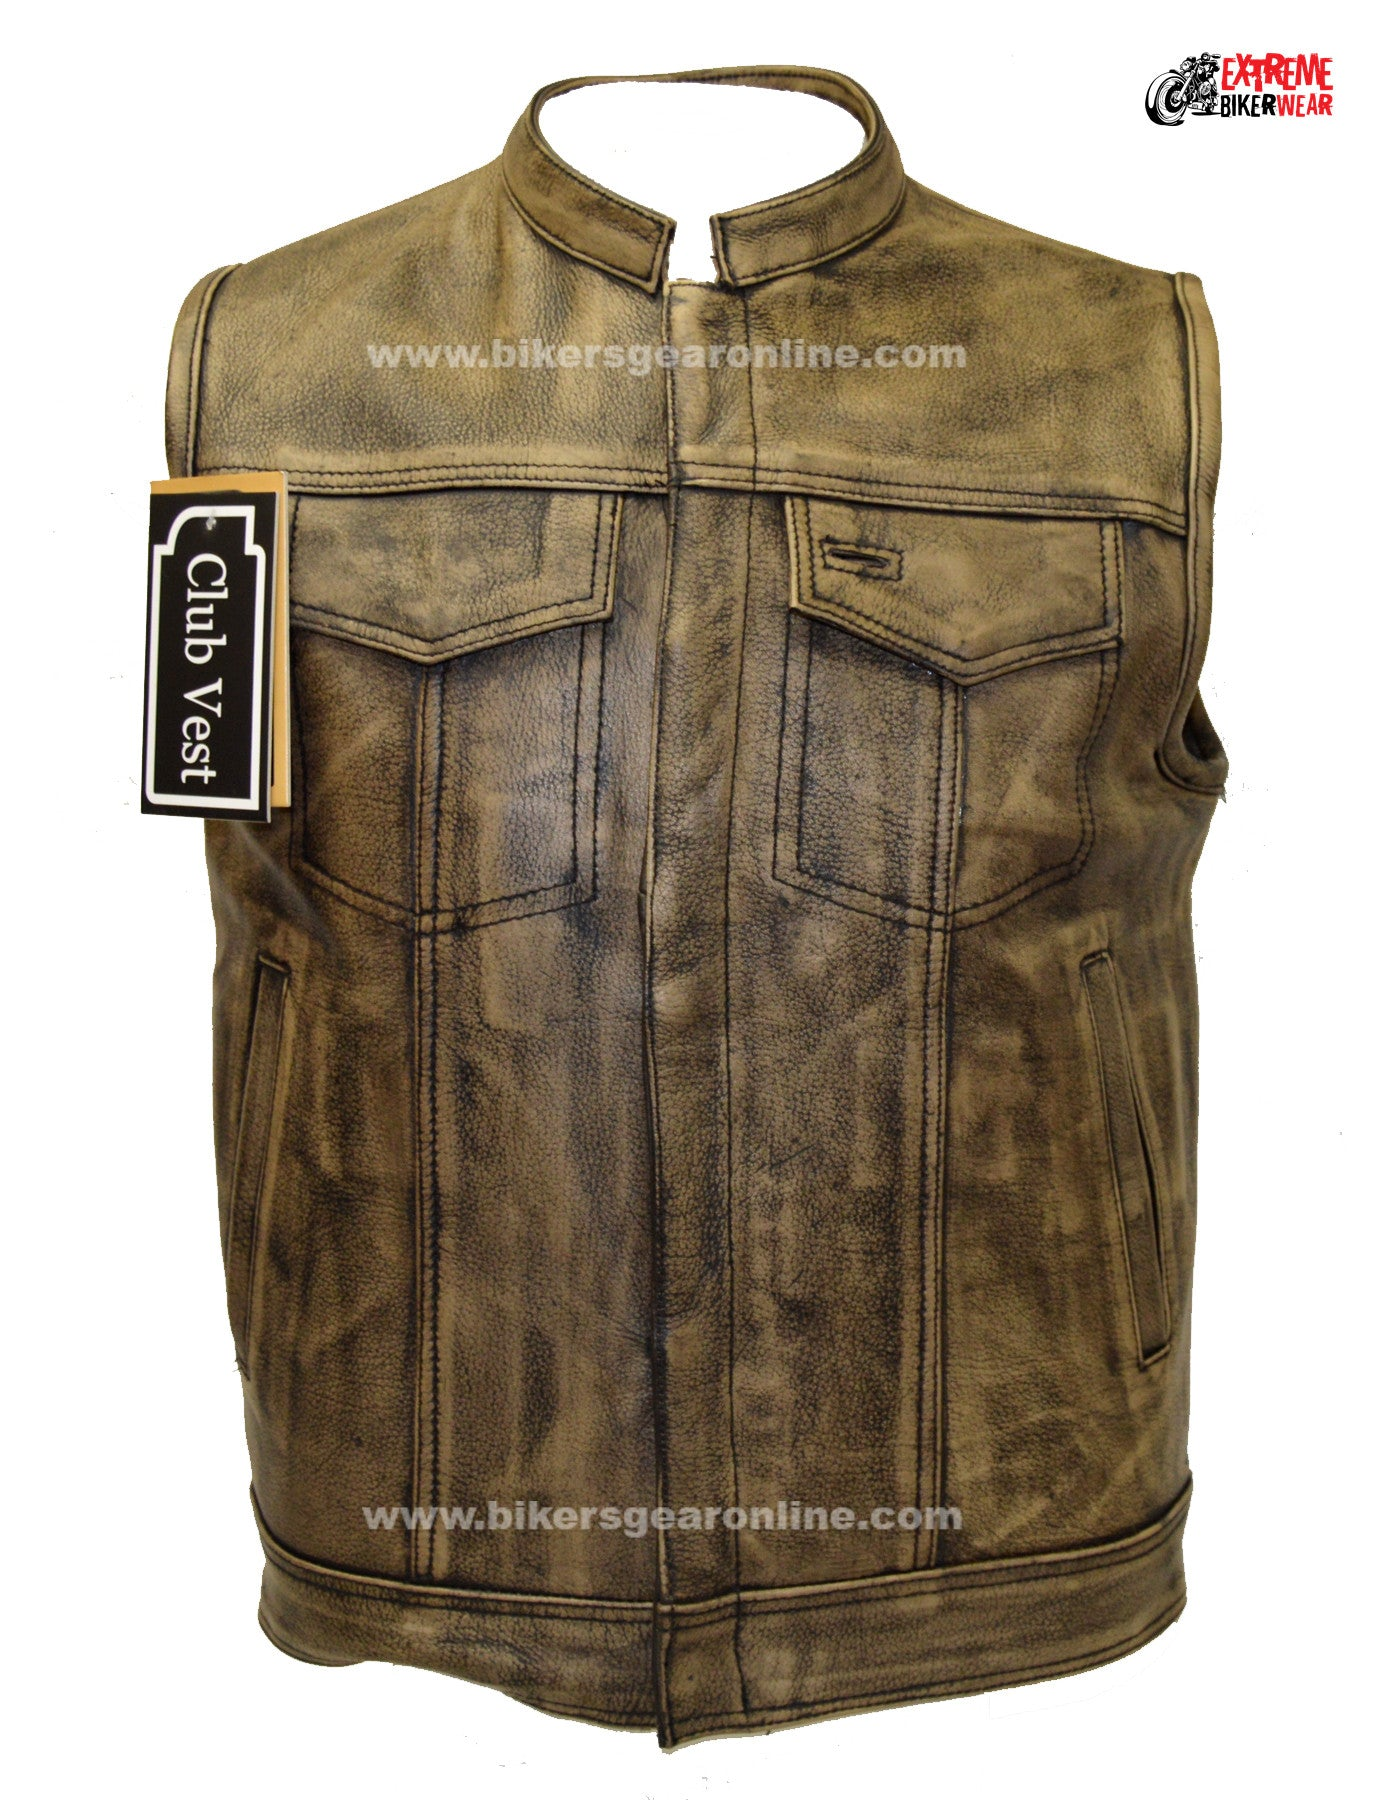 MOTORCYCLE DISTRESSED BROWN SOFT LEATHER CHAP FULLY LINED W/ 4 POCKET SNAP ZIP Auto e moto: ricambi e accessori